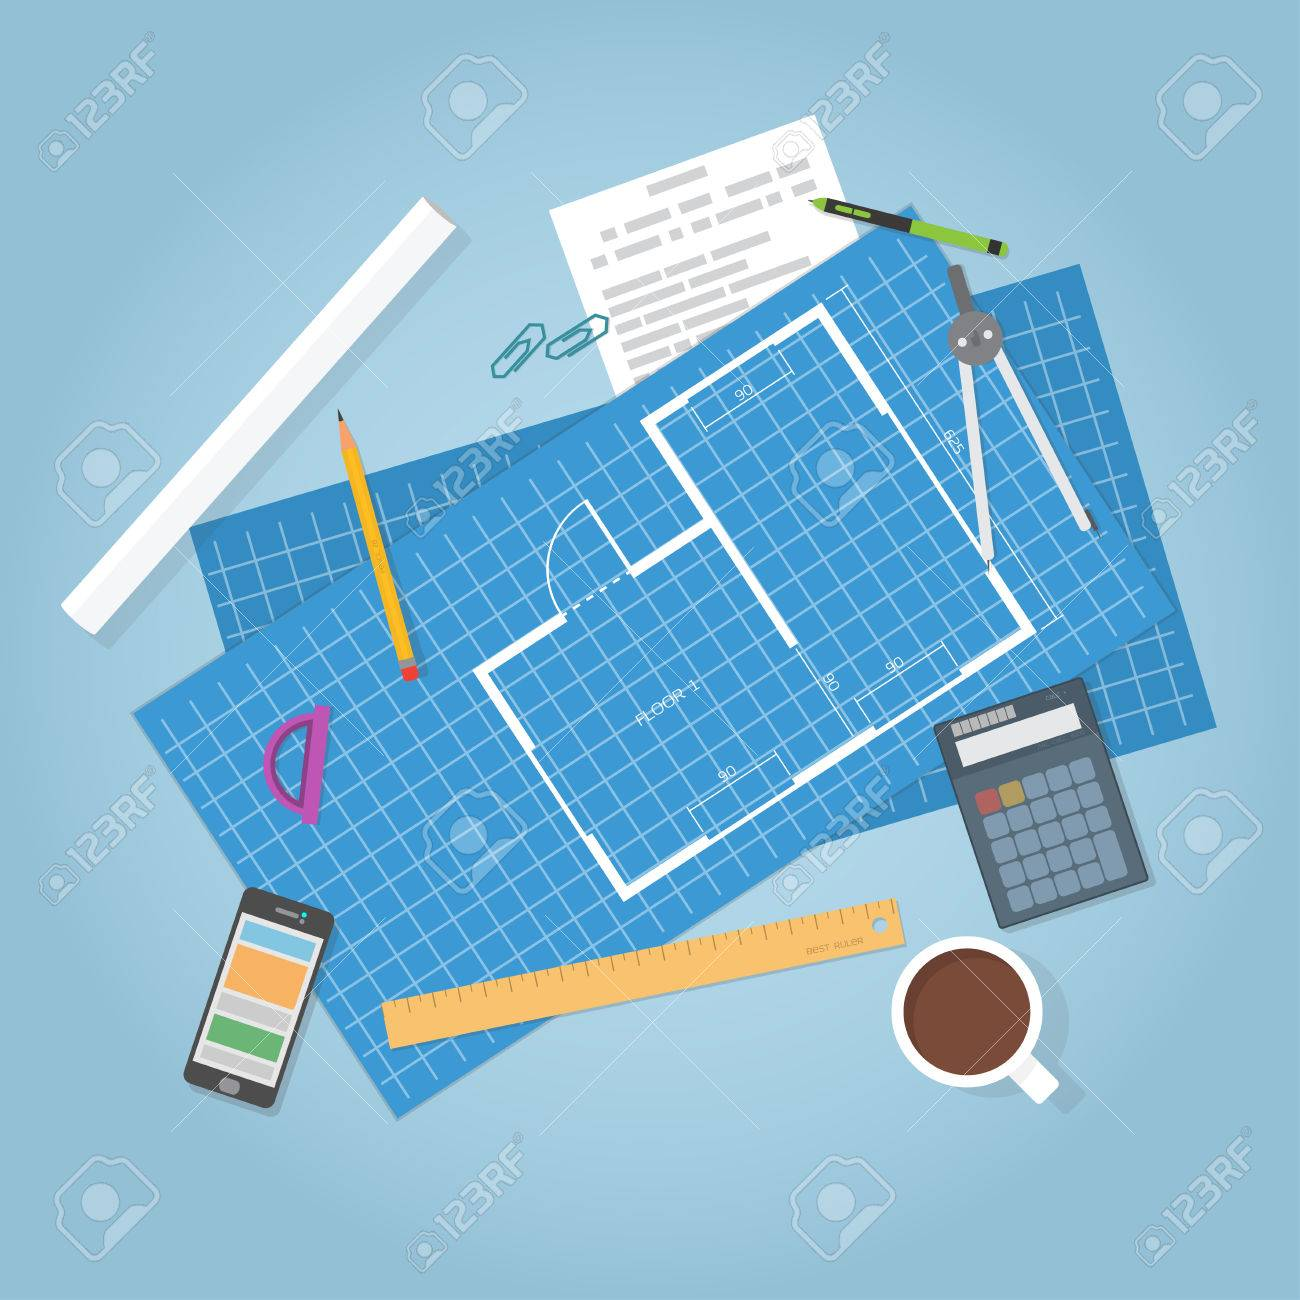 Architectural planning. Top view. Flat items, builder blueprints of house. Engineer data. - 48446215